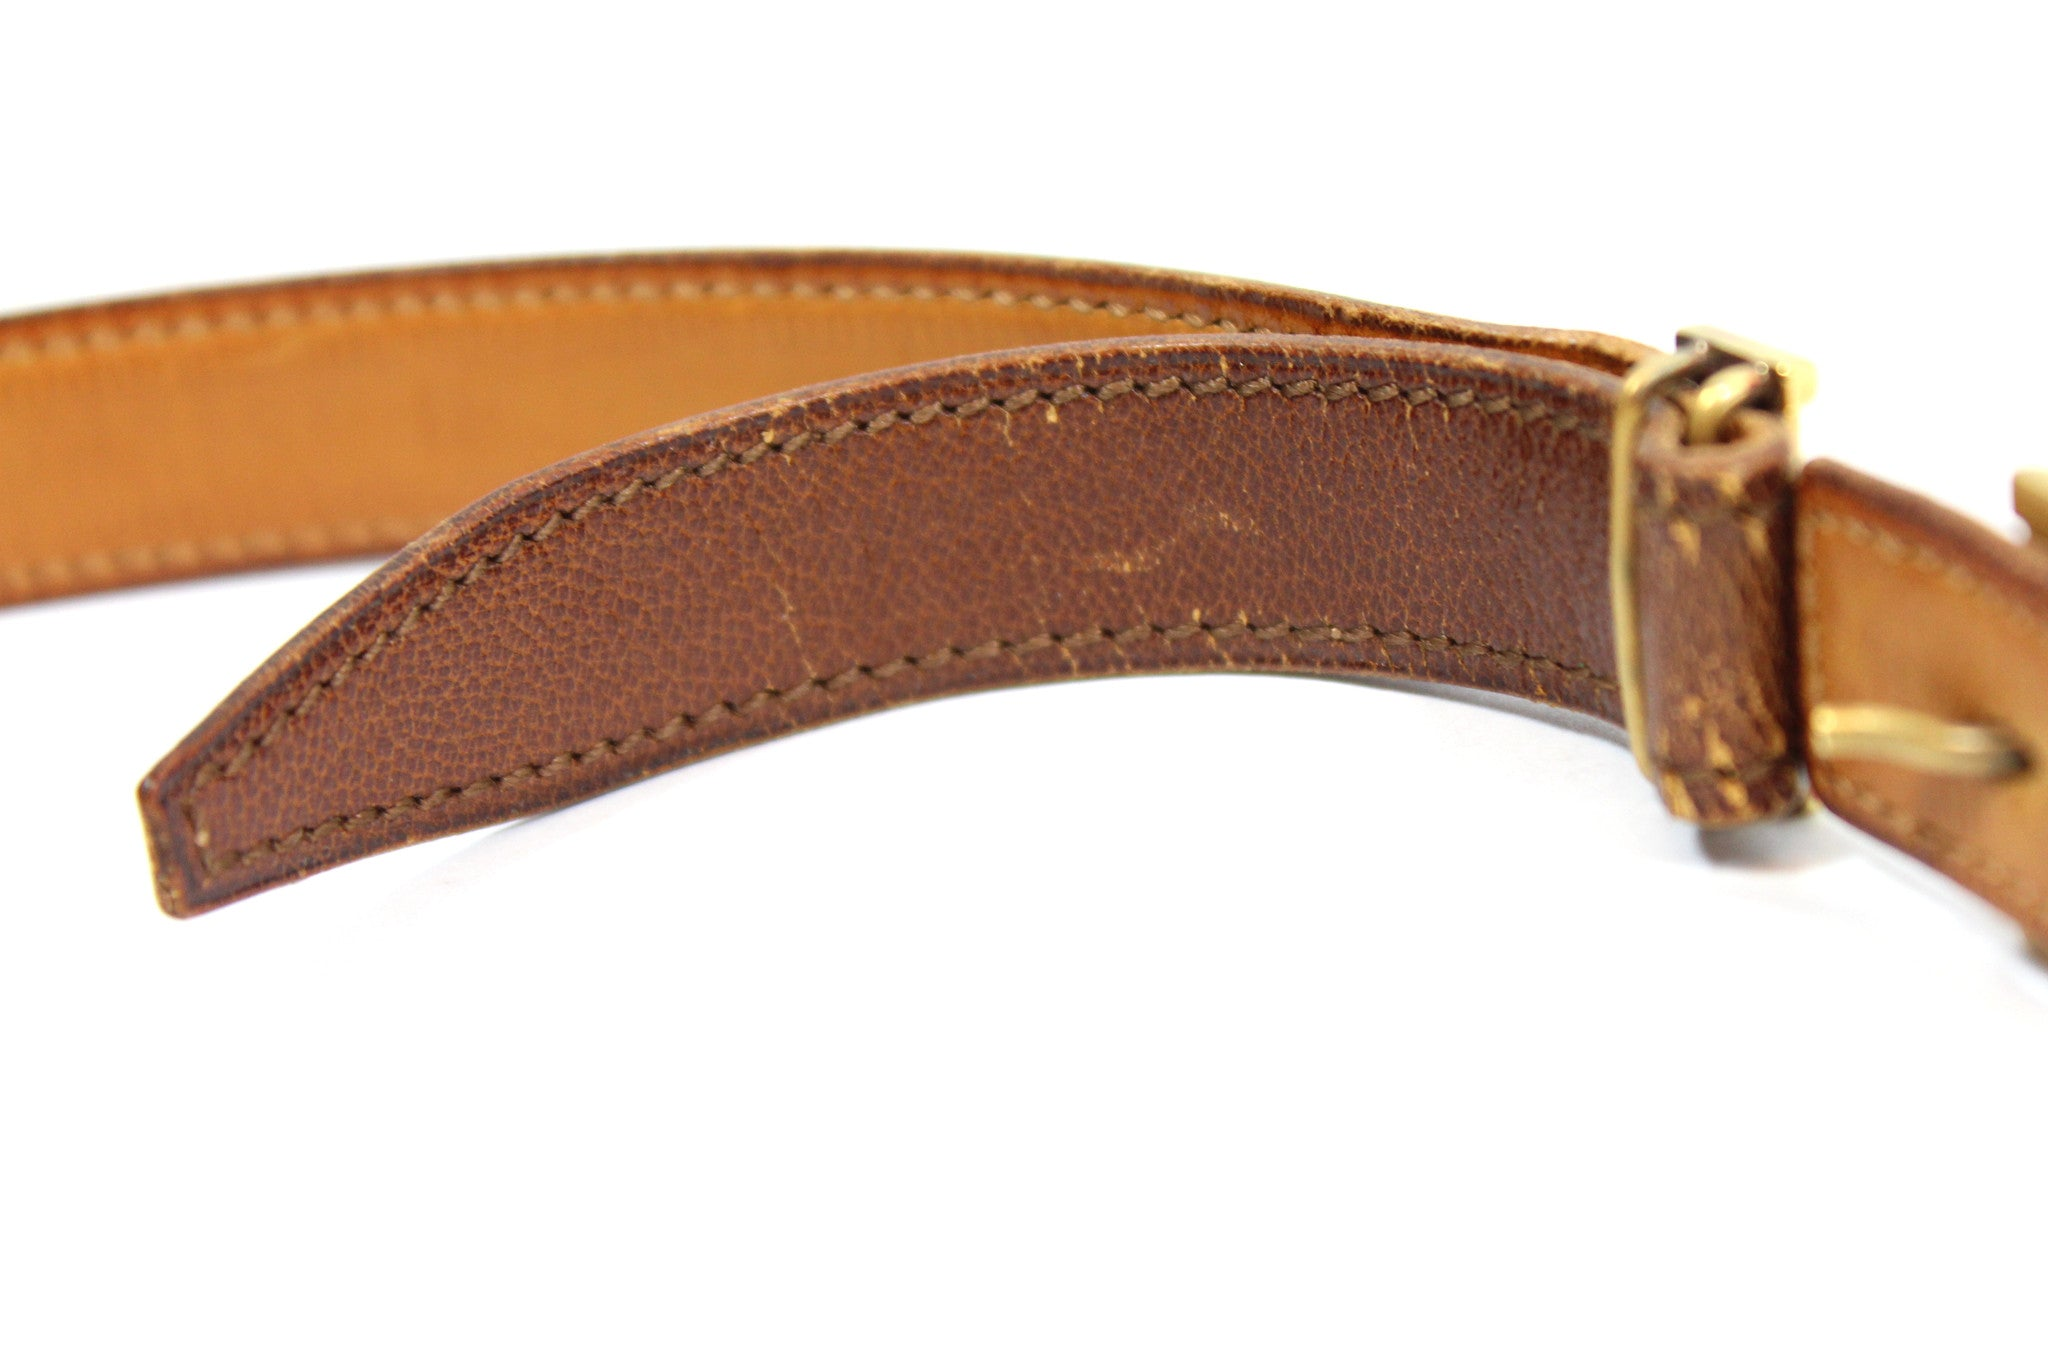 ~done~ Hermes Thin Brown Leather Belt w/ Gold Logo Buckle - Encore Consignment - 5